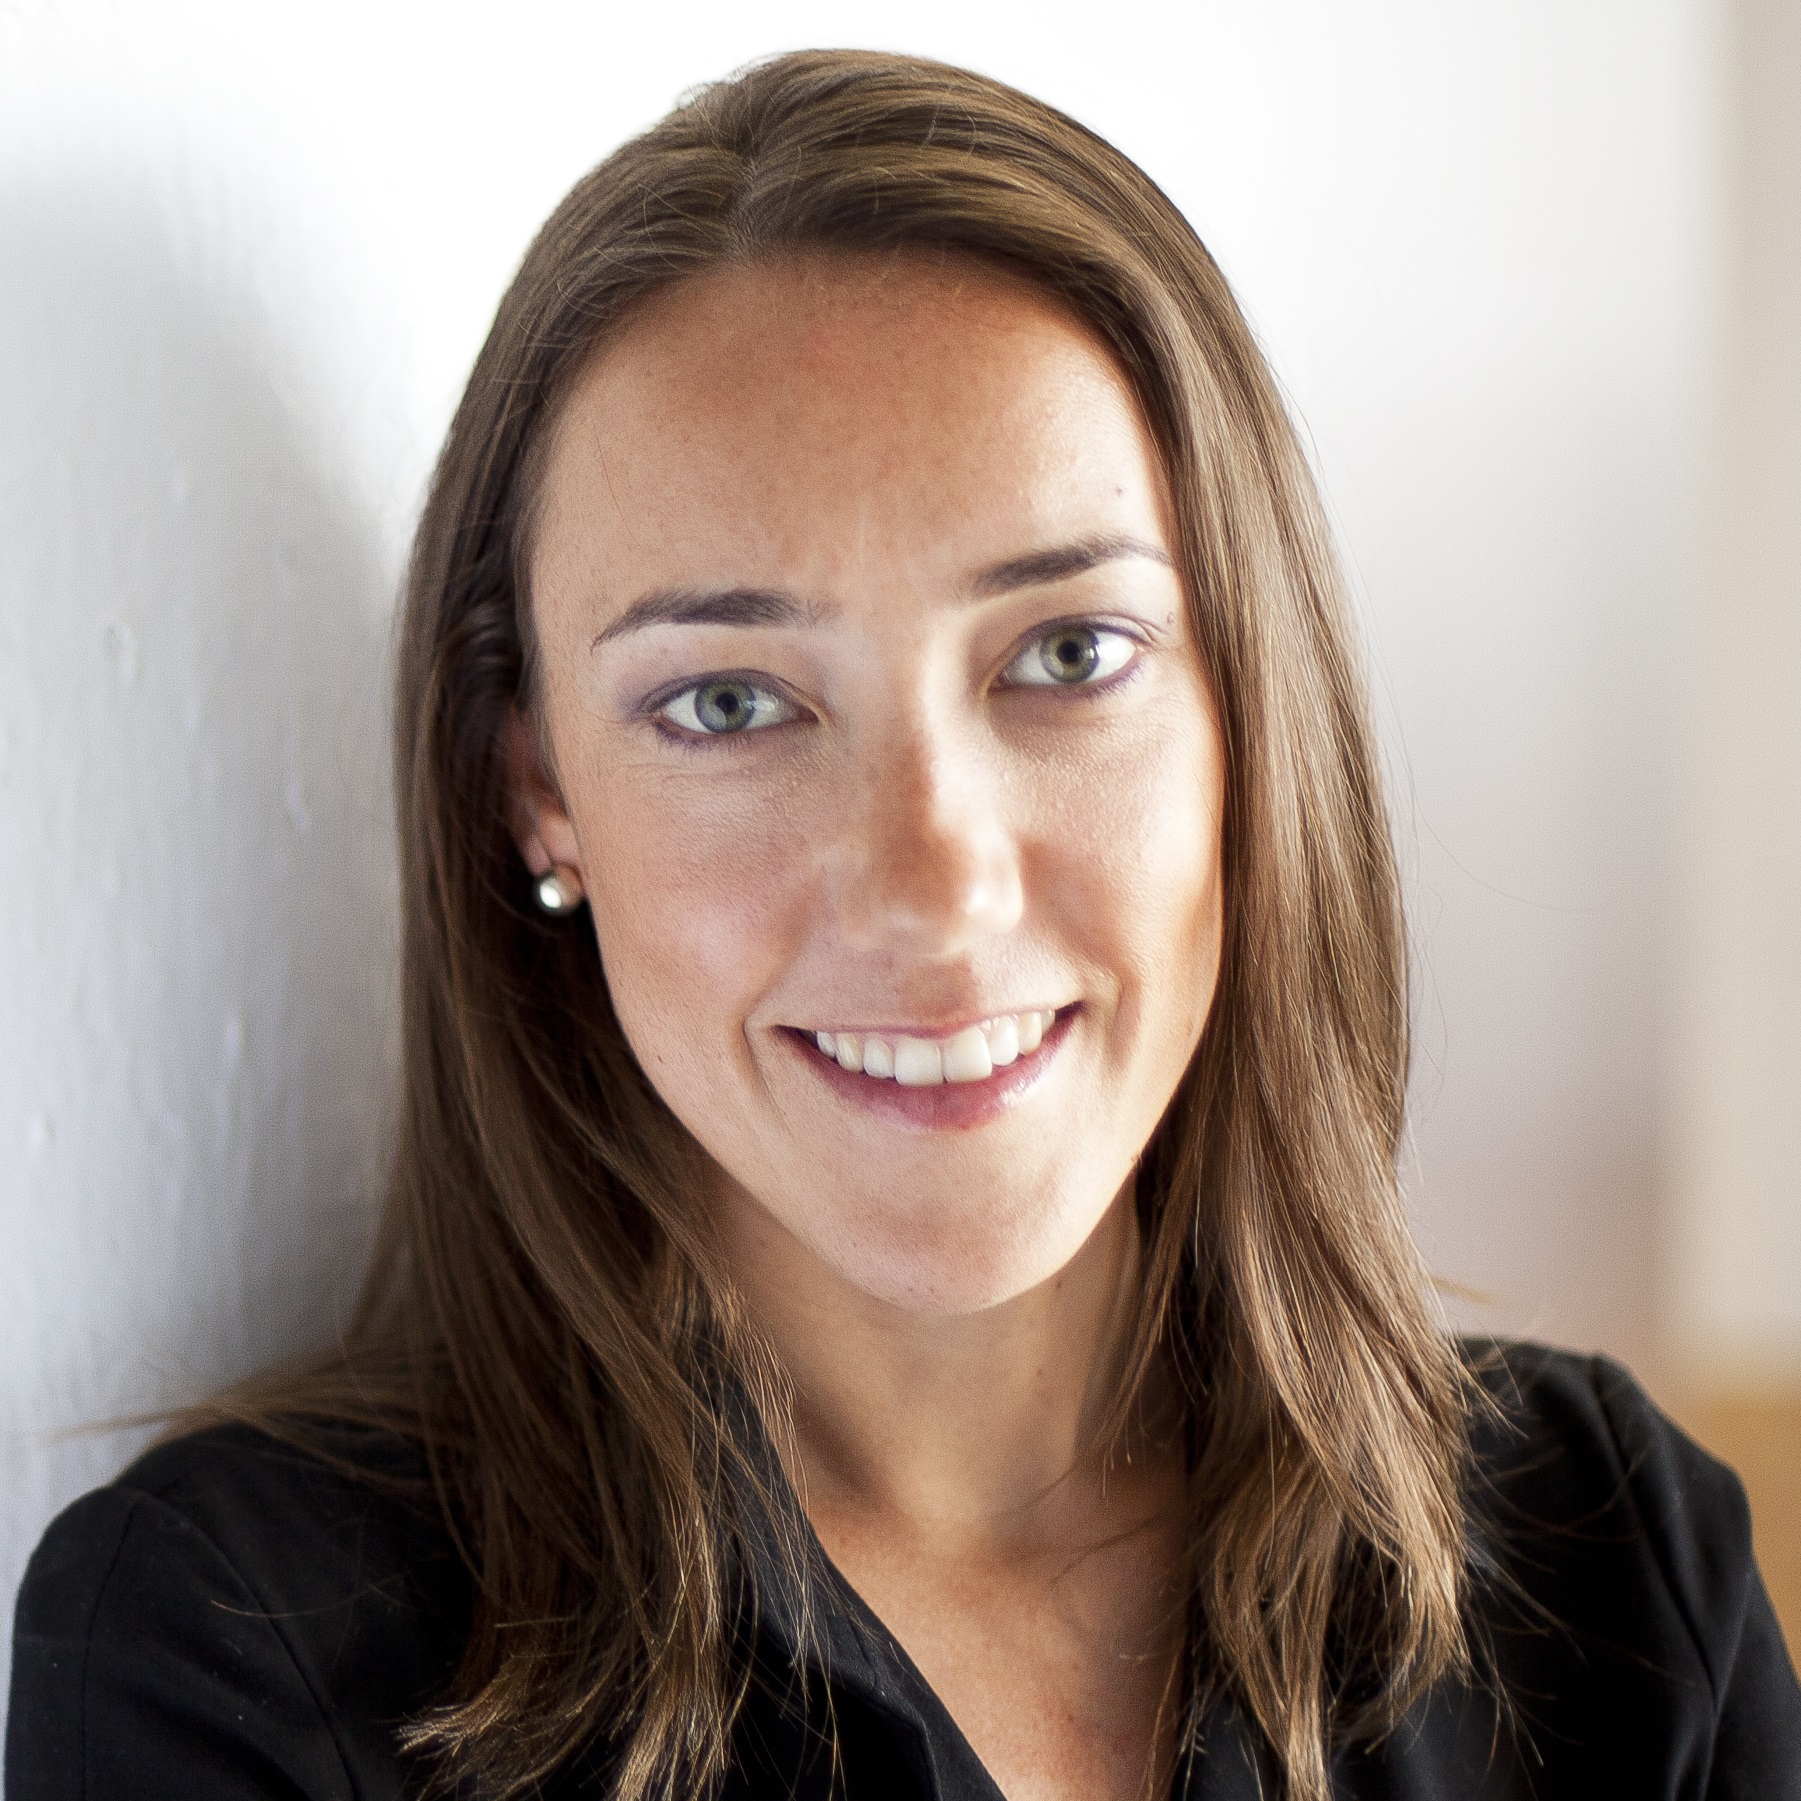 RateHub CEO and founder Alyssa Furtado plans to use the funding to invest in a new user platform.